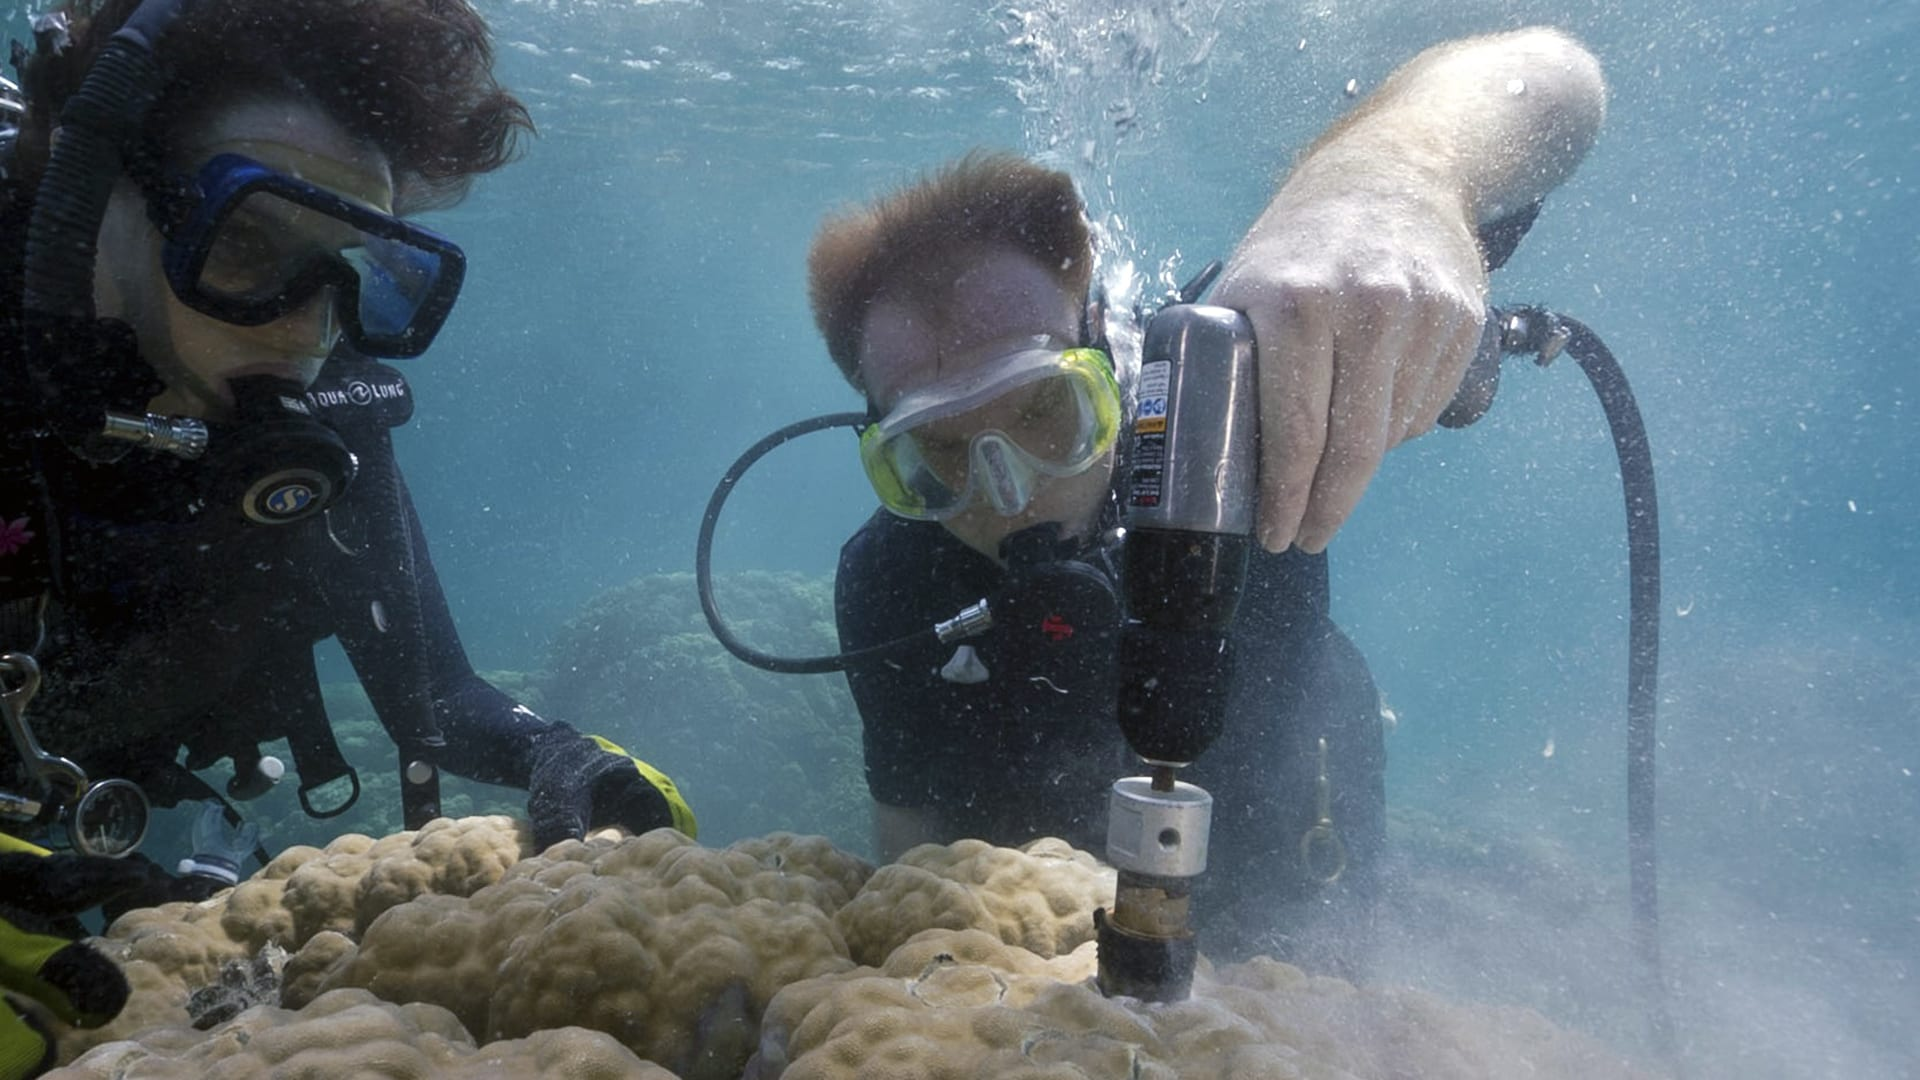 Ocean acidification causing coral 'osteoporosis' on iconic reefs